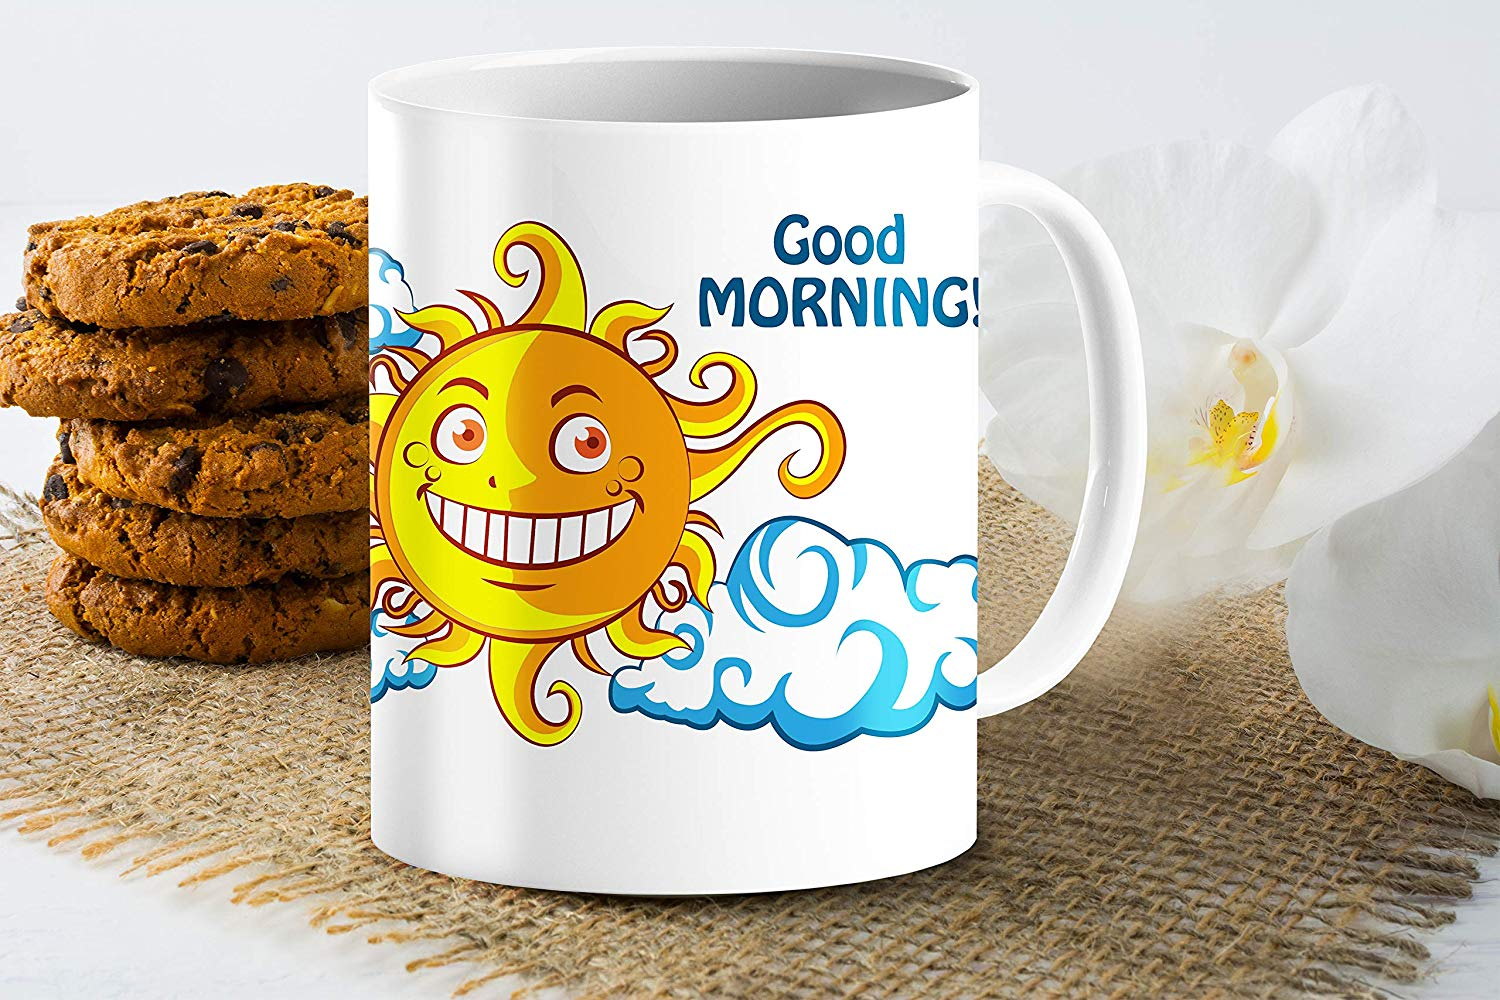 Heat Sensitive Color Changing Coffee Mug Funny Coffee Cup NightDay MoonSun Design Funny Gift Idea B07D223C62 3